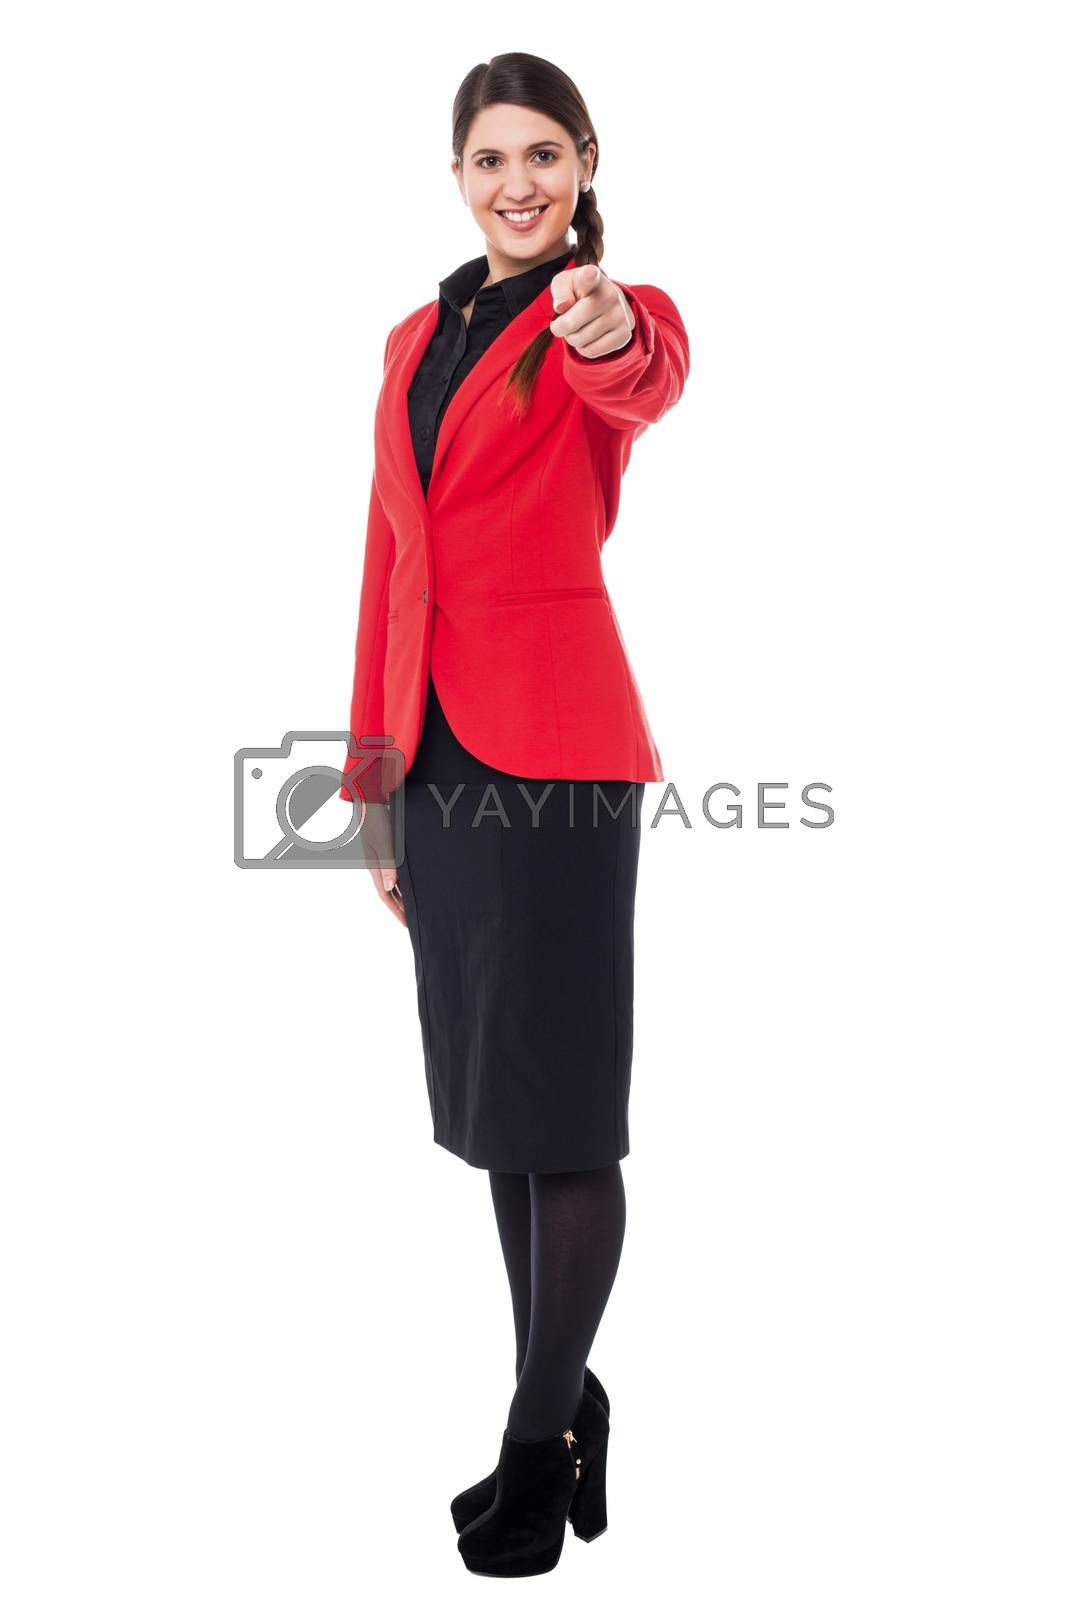 Royalty free image of Elegant presentable businesswoman pointing by stockyimages